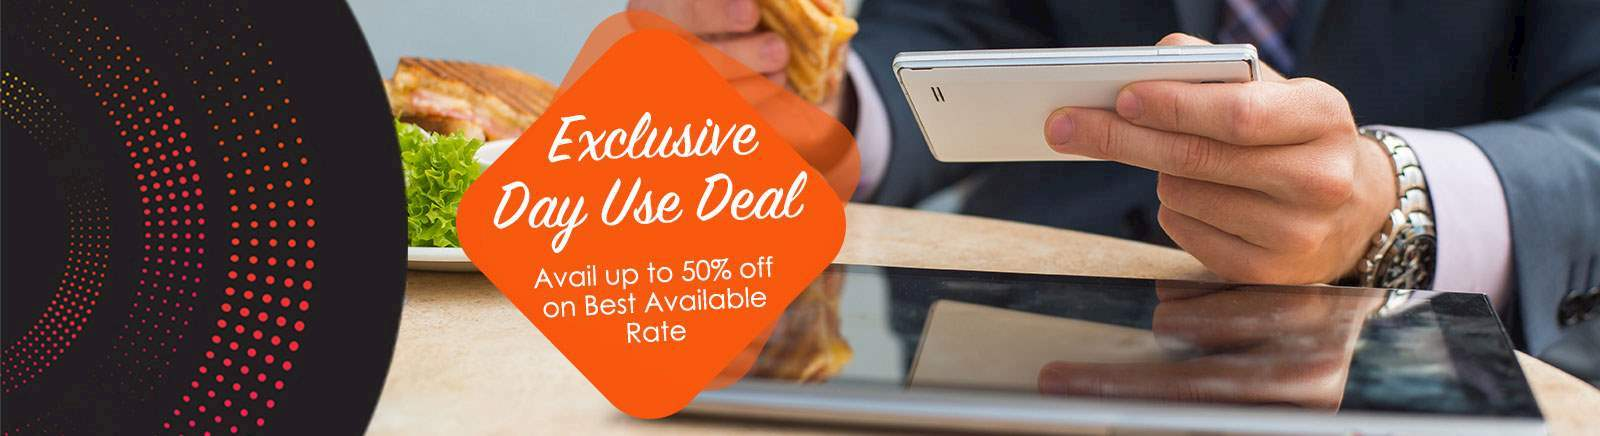 EXCLUSIVE DAY USE HOTEL DEAL